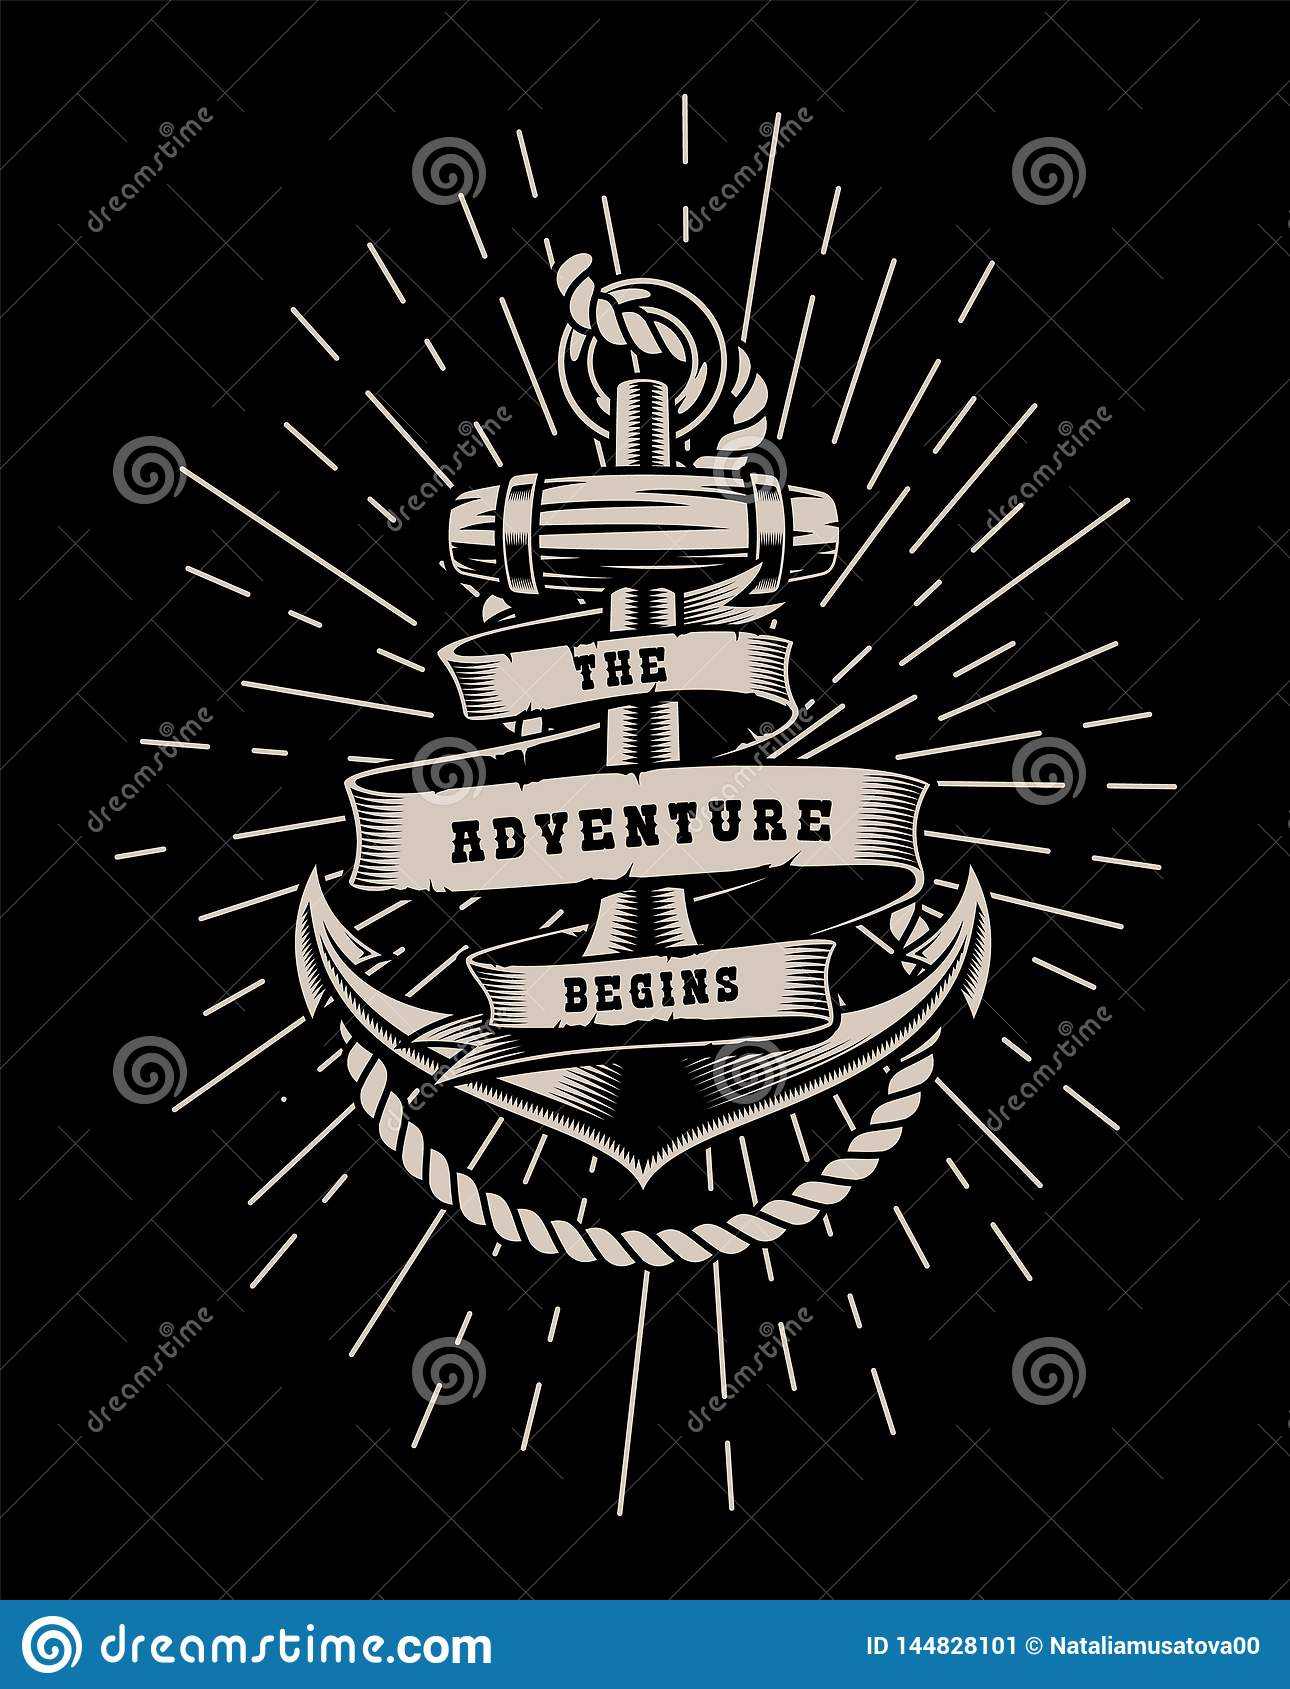 Vector illustration with rope and lettering on a dark background.